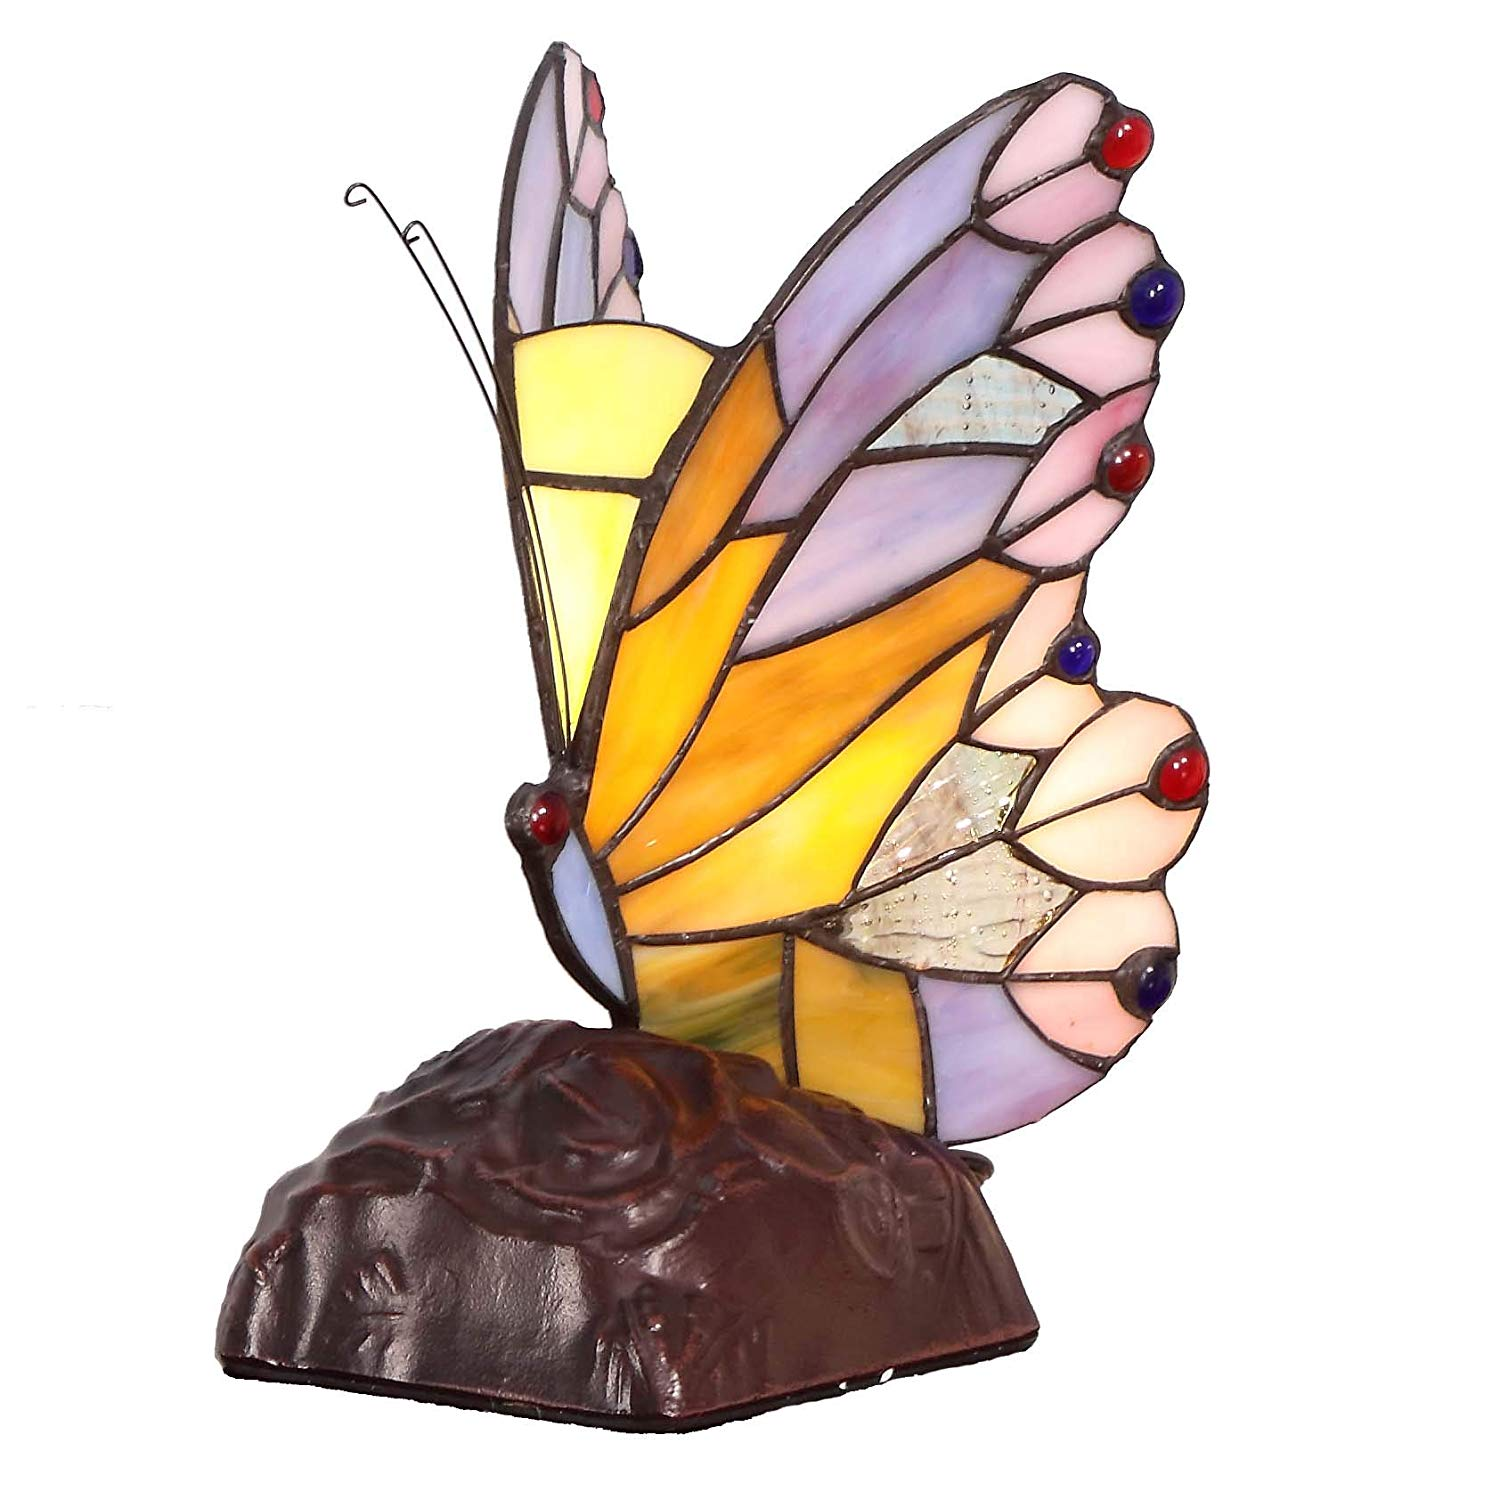 bieye inch butterfly tiffany style stained glass accent table lamp round tables for living room bronze coffee shabby chic shelves wine colored tablecloth nautical pendant lights